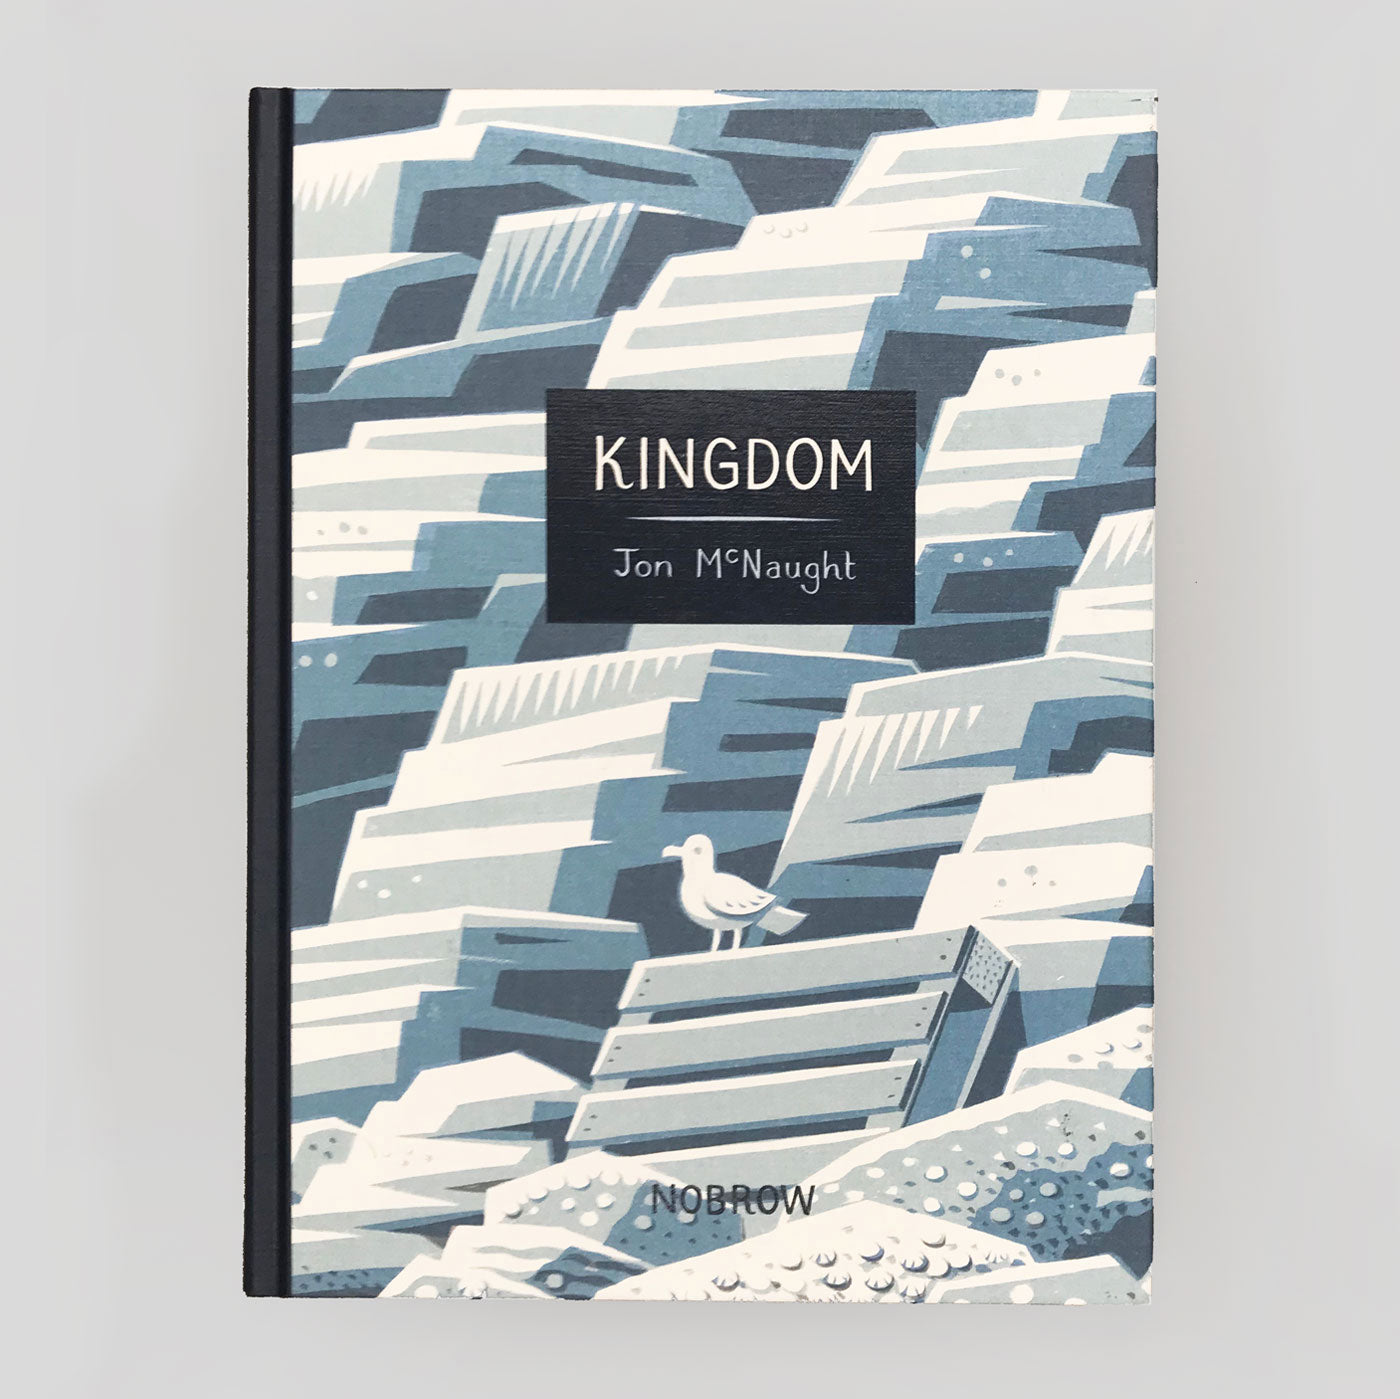 Kingdom - Jon McNaught - NoBrow